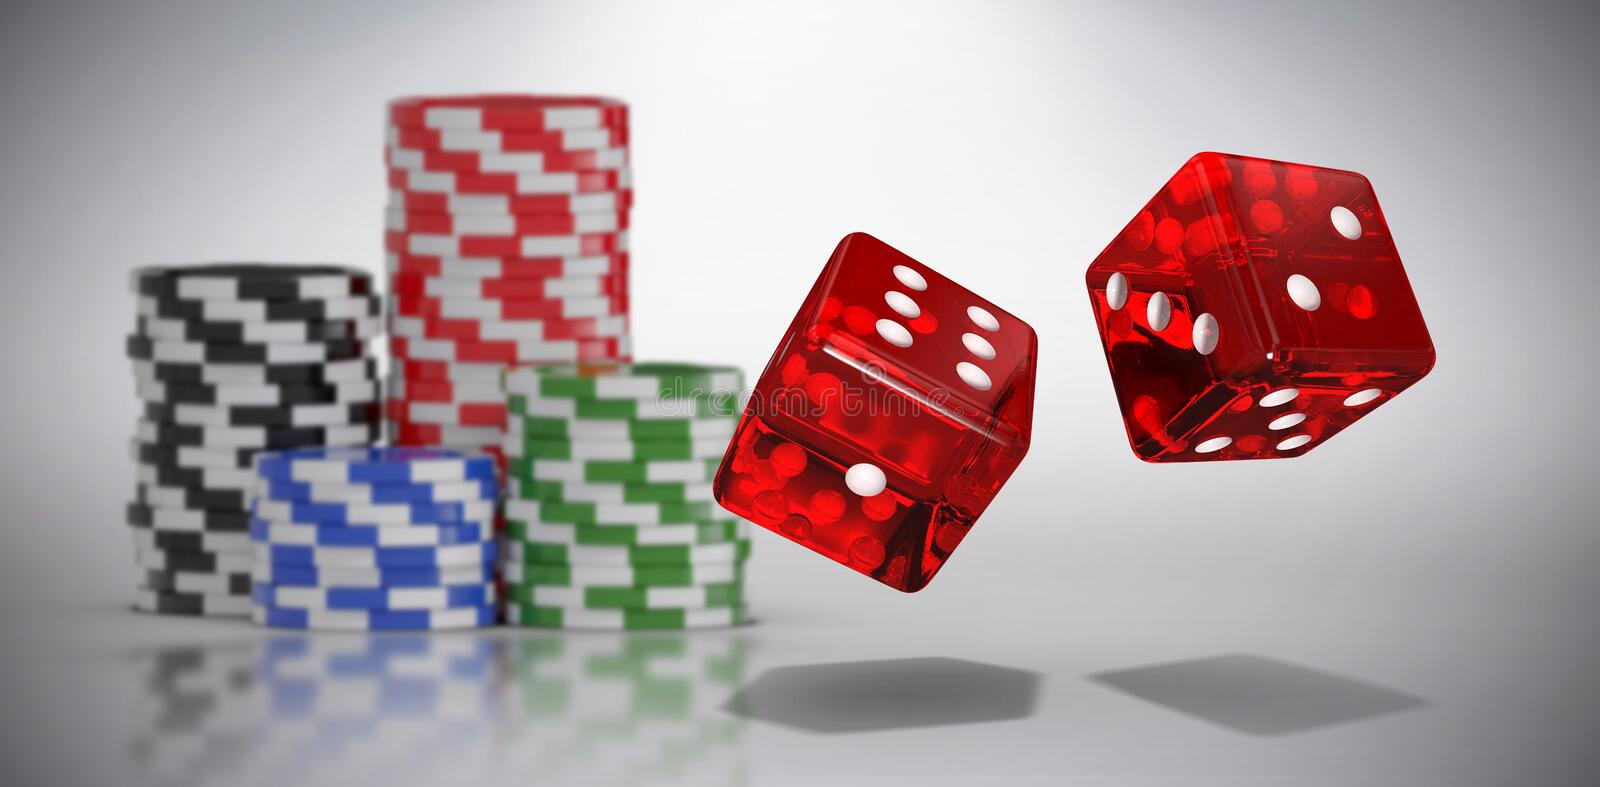 Composite image of computer generated 3d image of red dice. Computer generated 3D image of red dice against grey background vector illustration